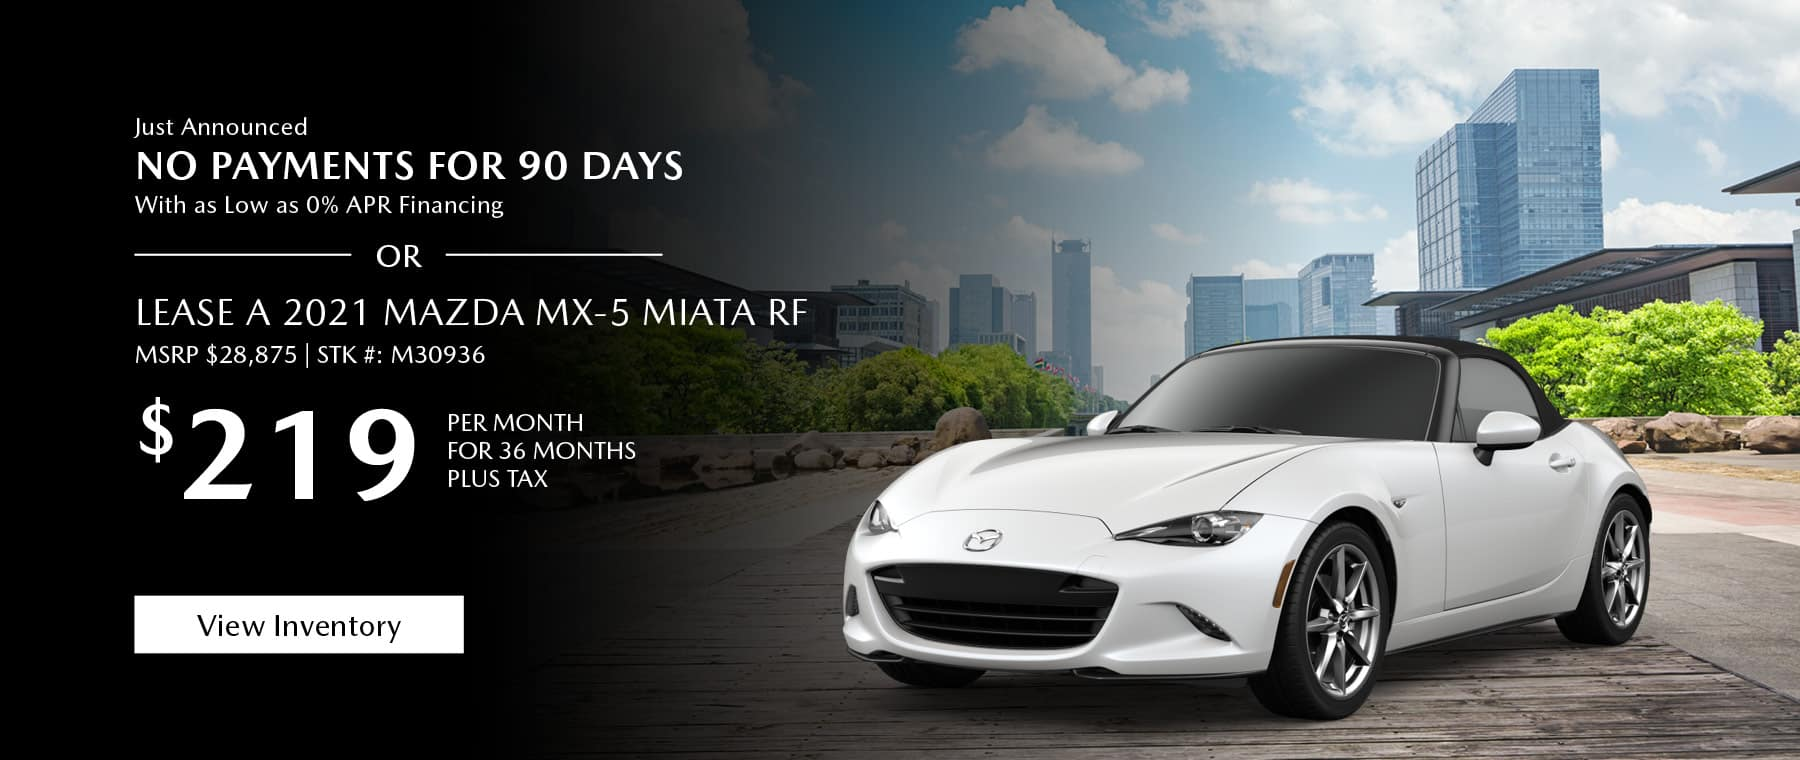 Just Announced, No payments for 90 days with as low as %0 APR financing, or lease the 2021 Mazda MX-5 Miata for $219 per month, plus tax for 36 months. Click or tap here to view our inventory.